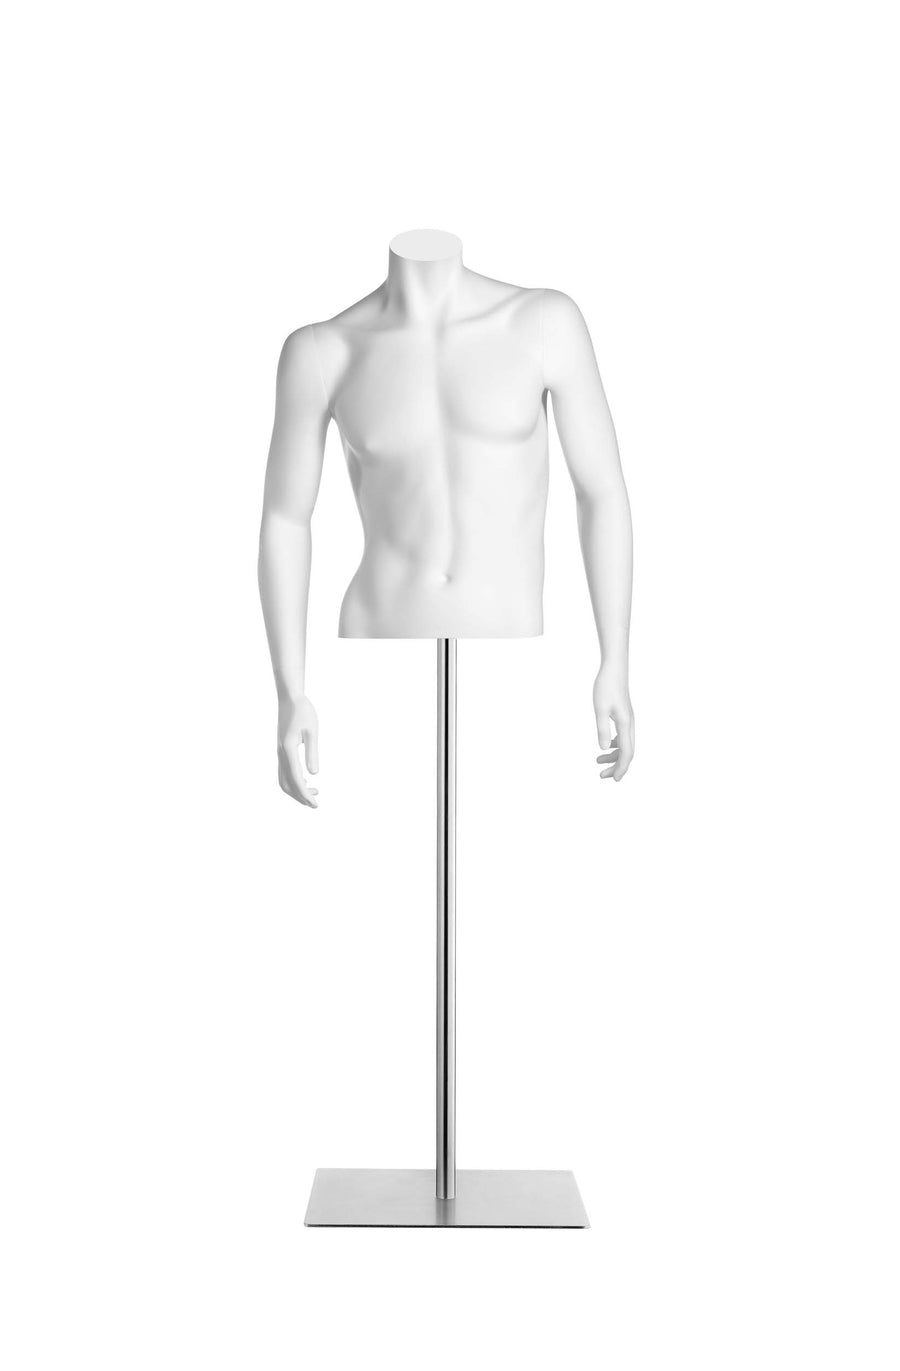 pure white headless male half torso mannequin with arms at sides